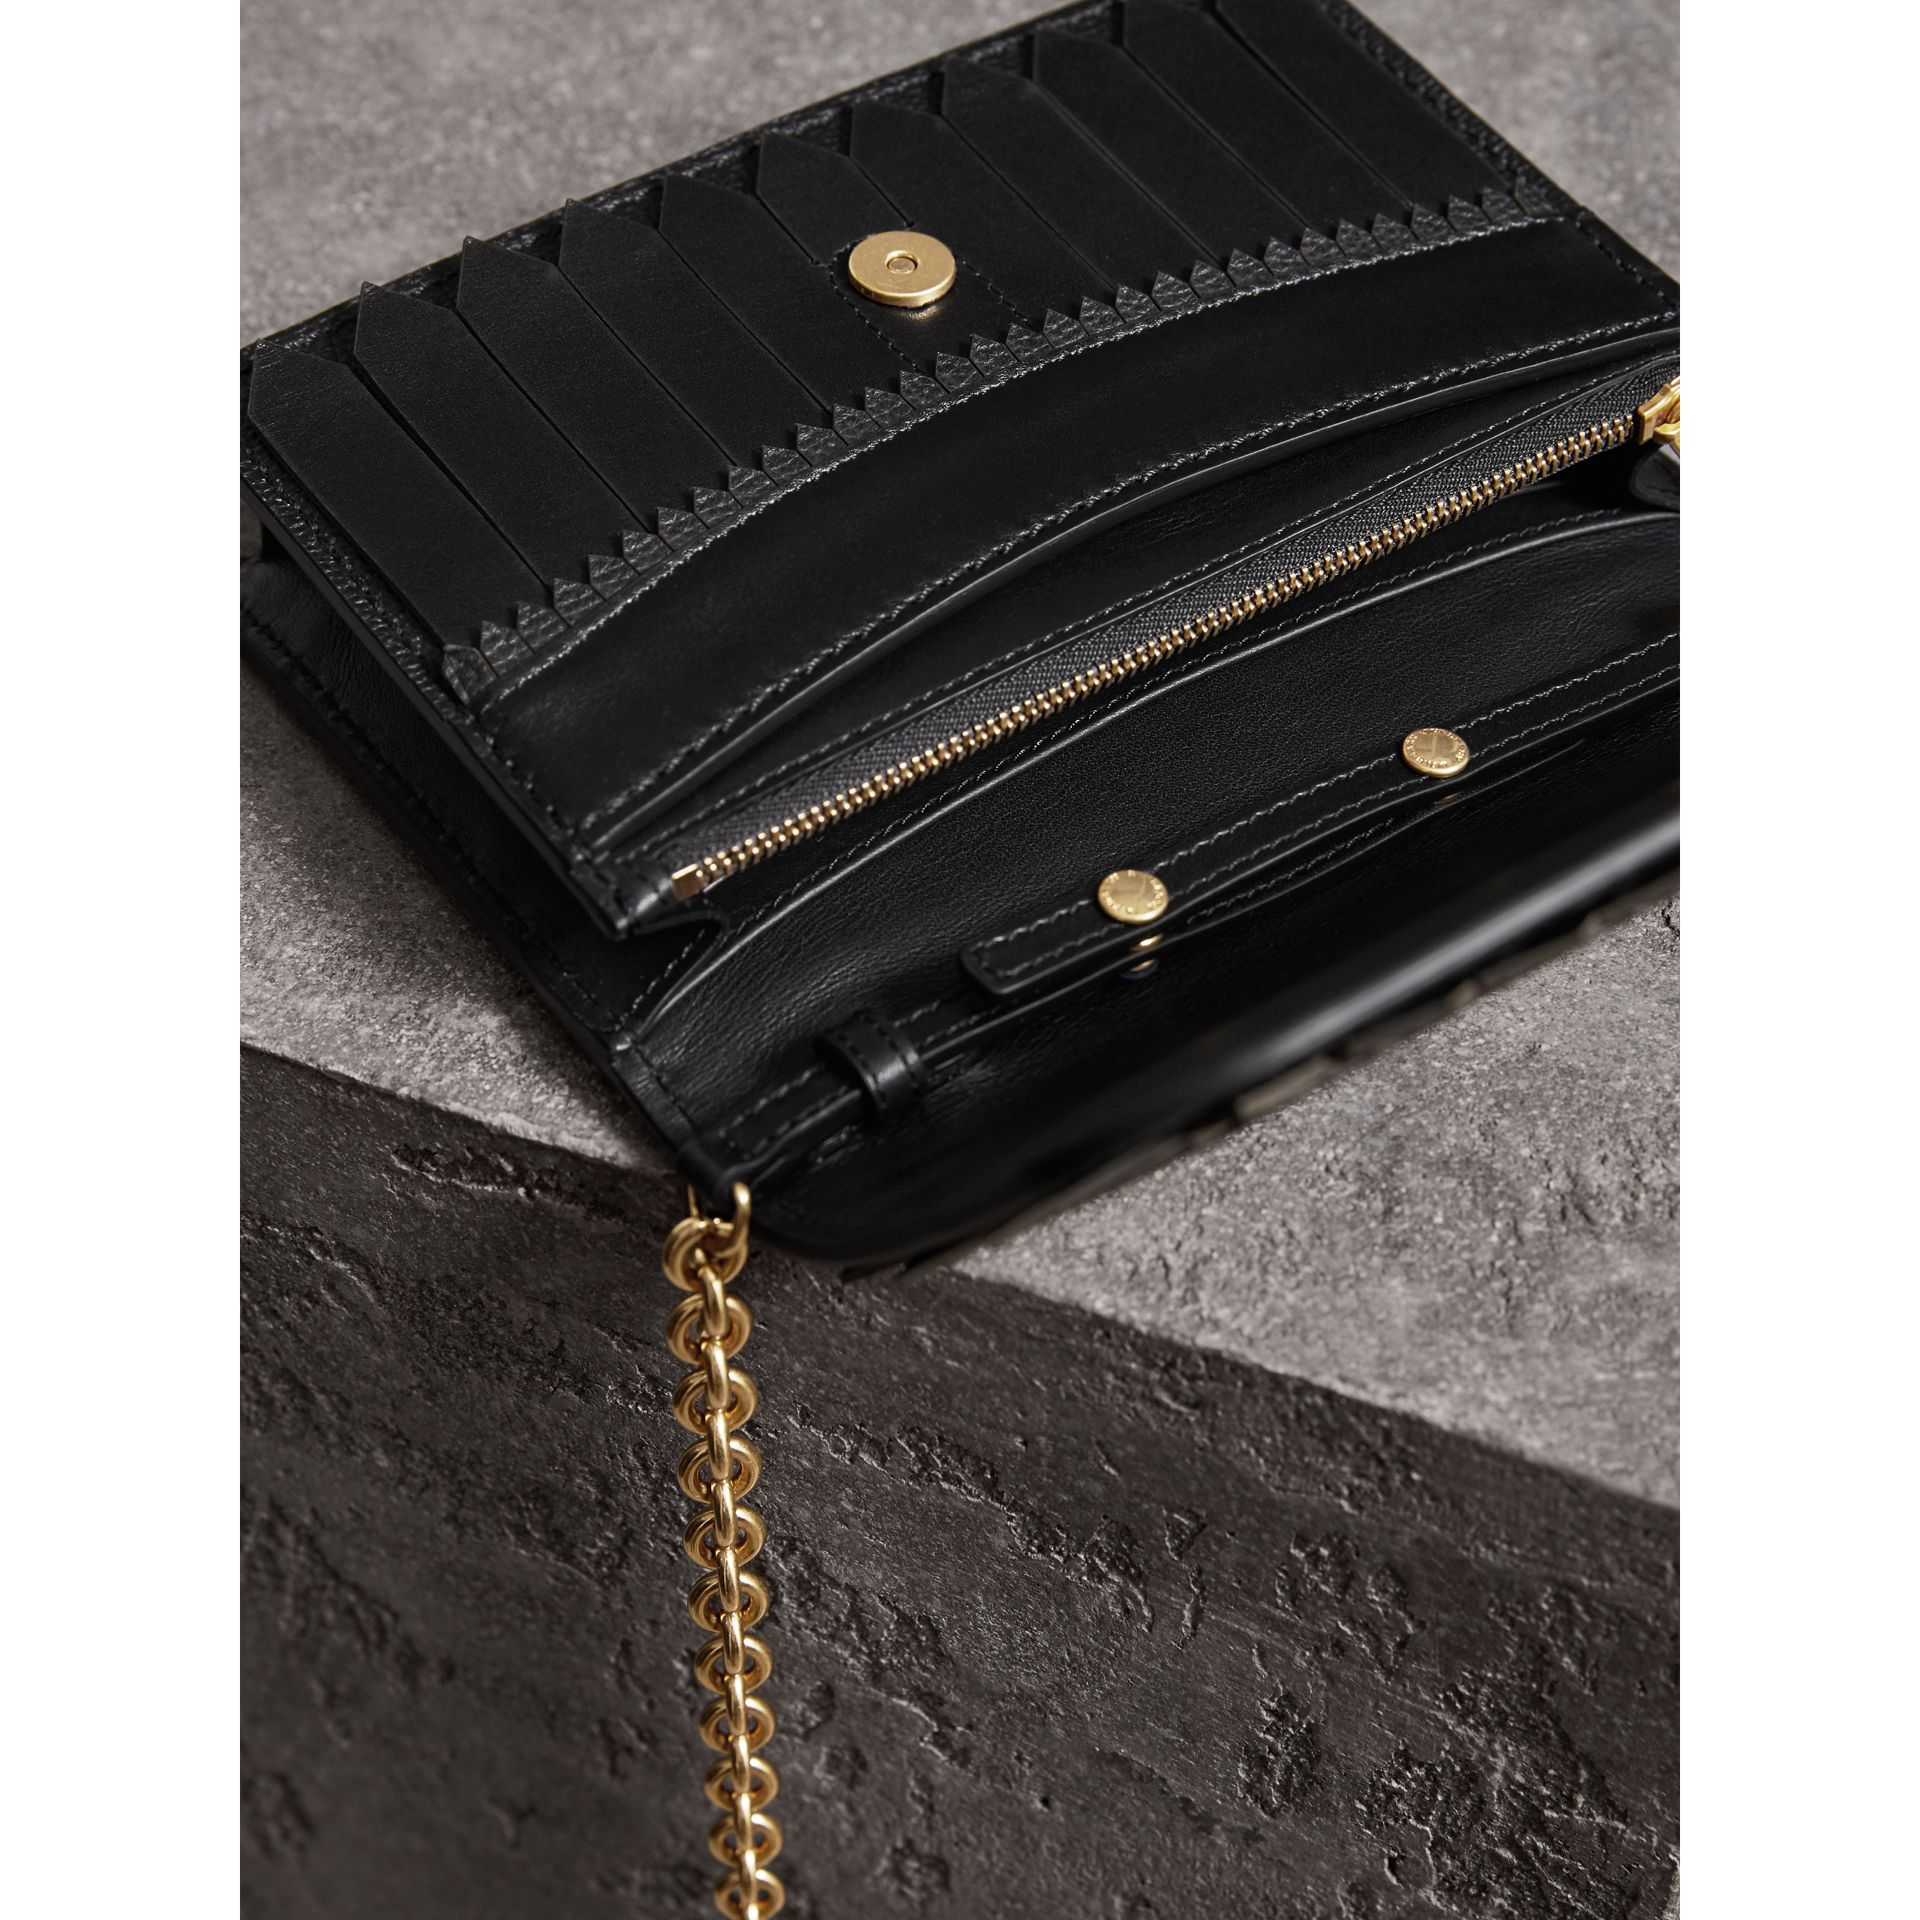 Brogue Detail Leather Wallet with Detachable Strap in Black - Women | Burberry Singapore - gallery image 5